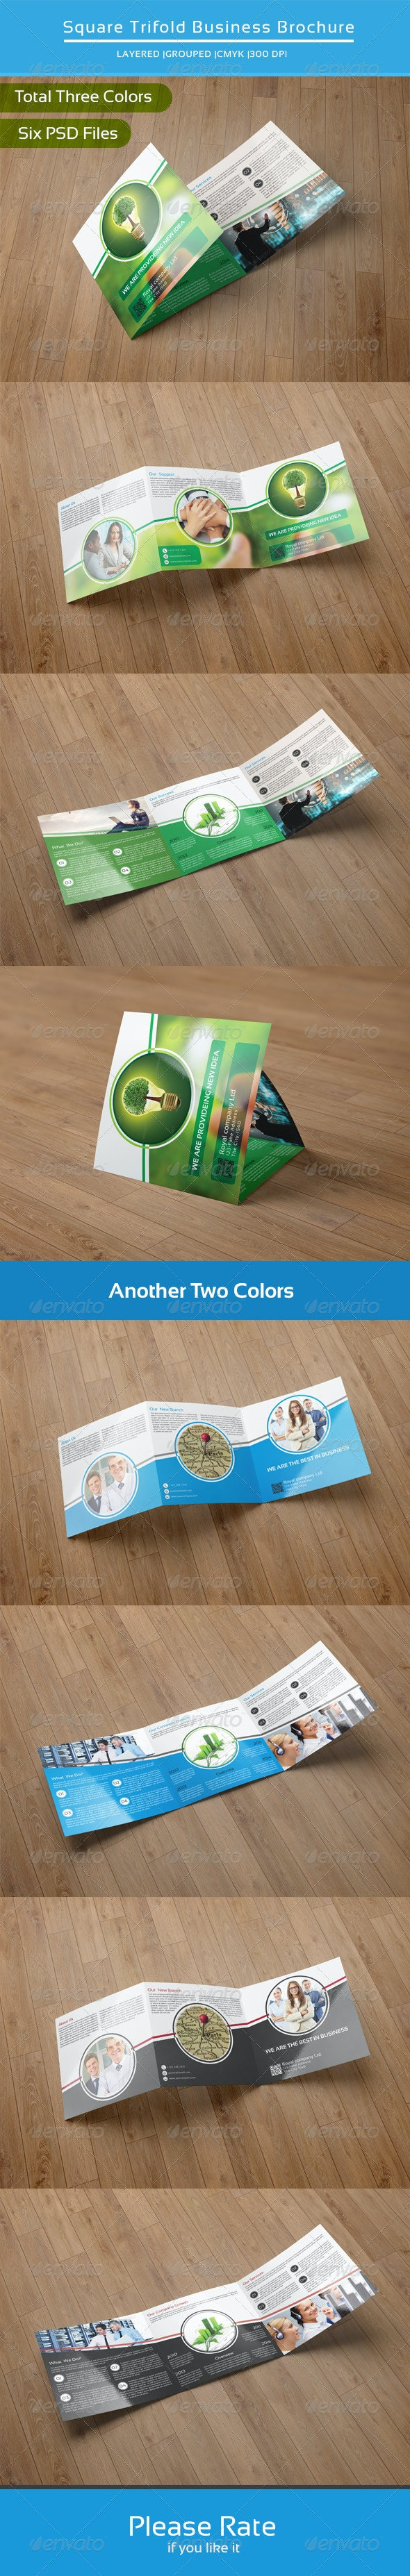 Square Trifold Business Brochure-V15 - Corporate Brochures